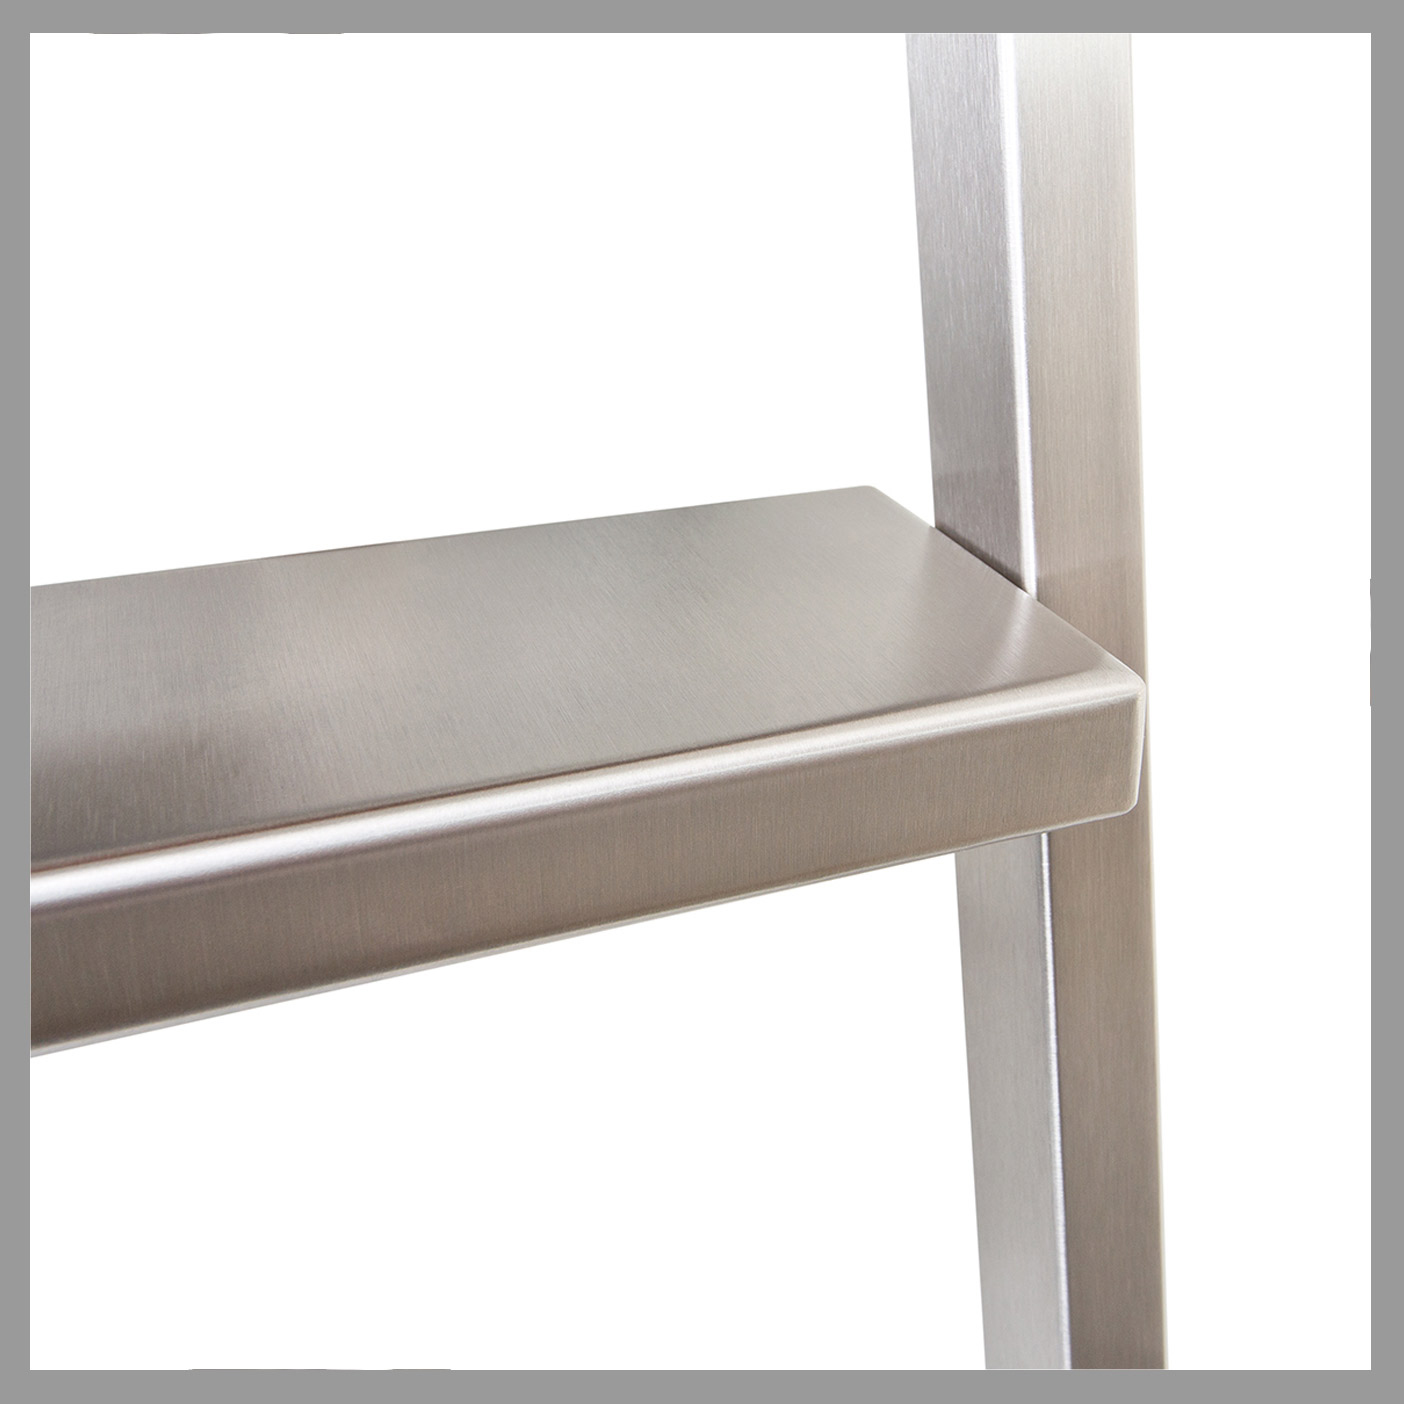 Akzent : Square Stringers + Stainless Steel Steps